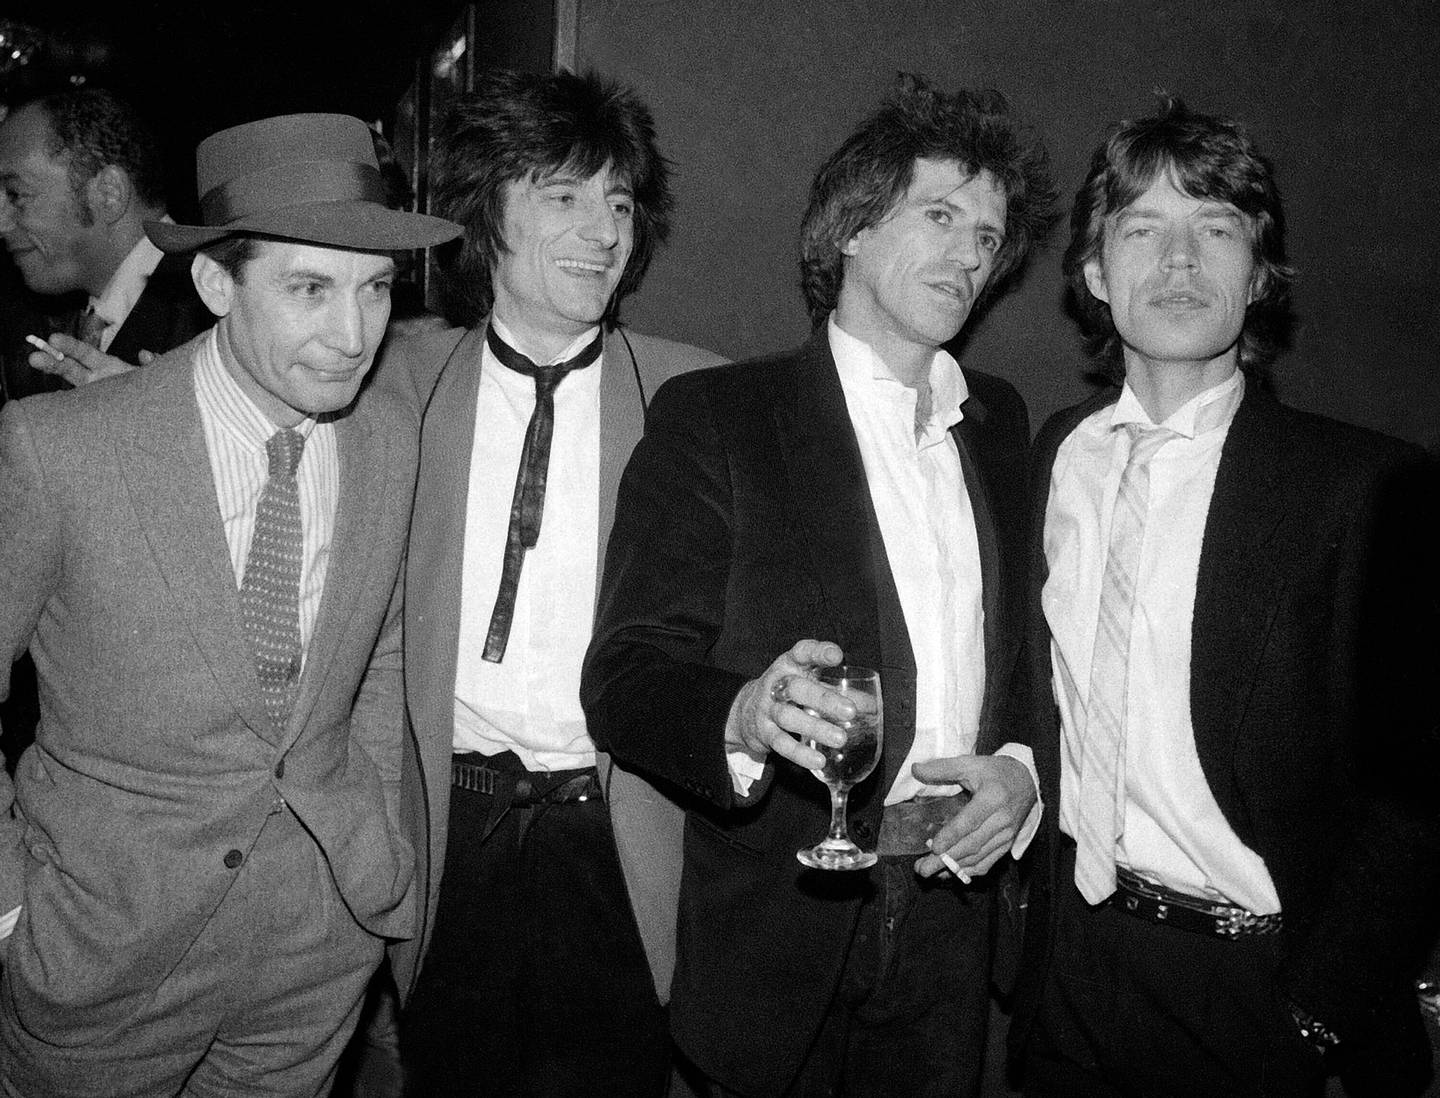 Charlie Watts, Ron Wood, Keith Richards, and Mick Jagger appear at a party celebrating the opening of their film Let's Spend The Night Together in New York on January 18, 1983. Photo / AP